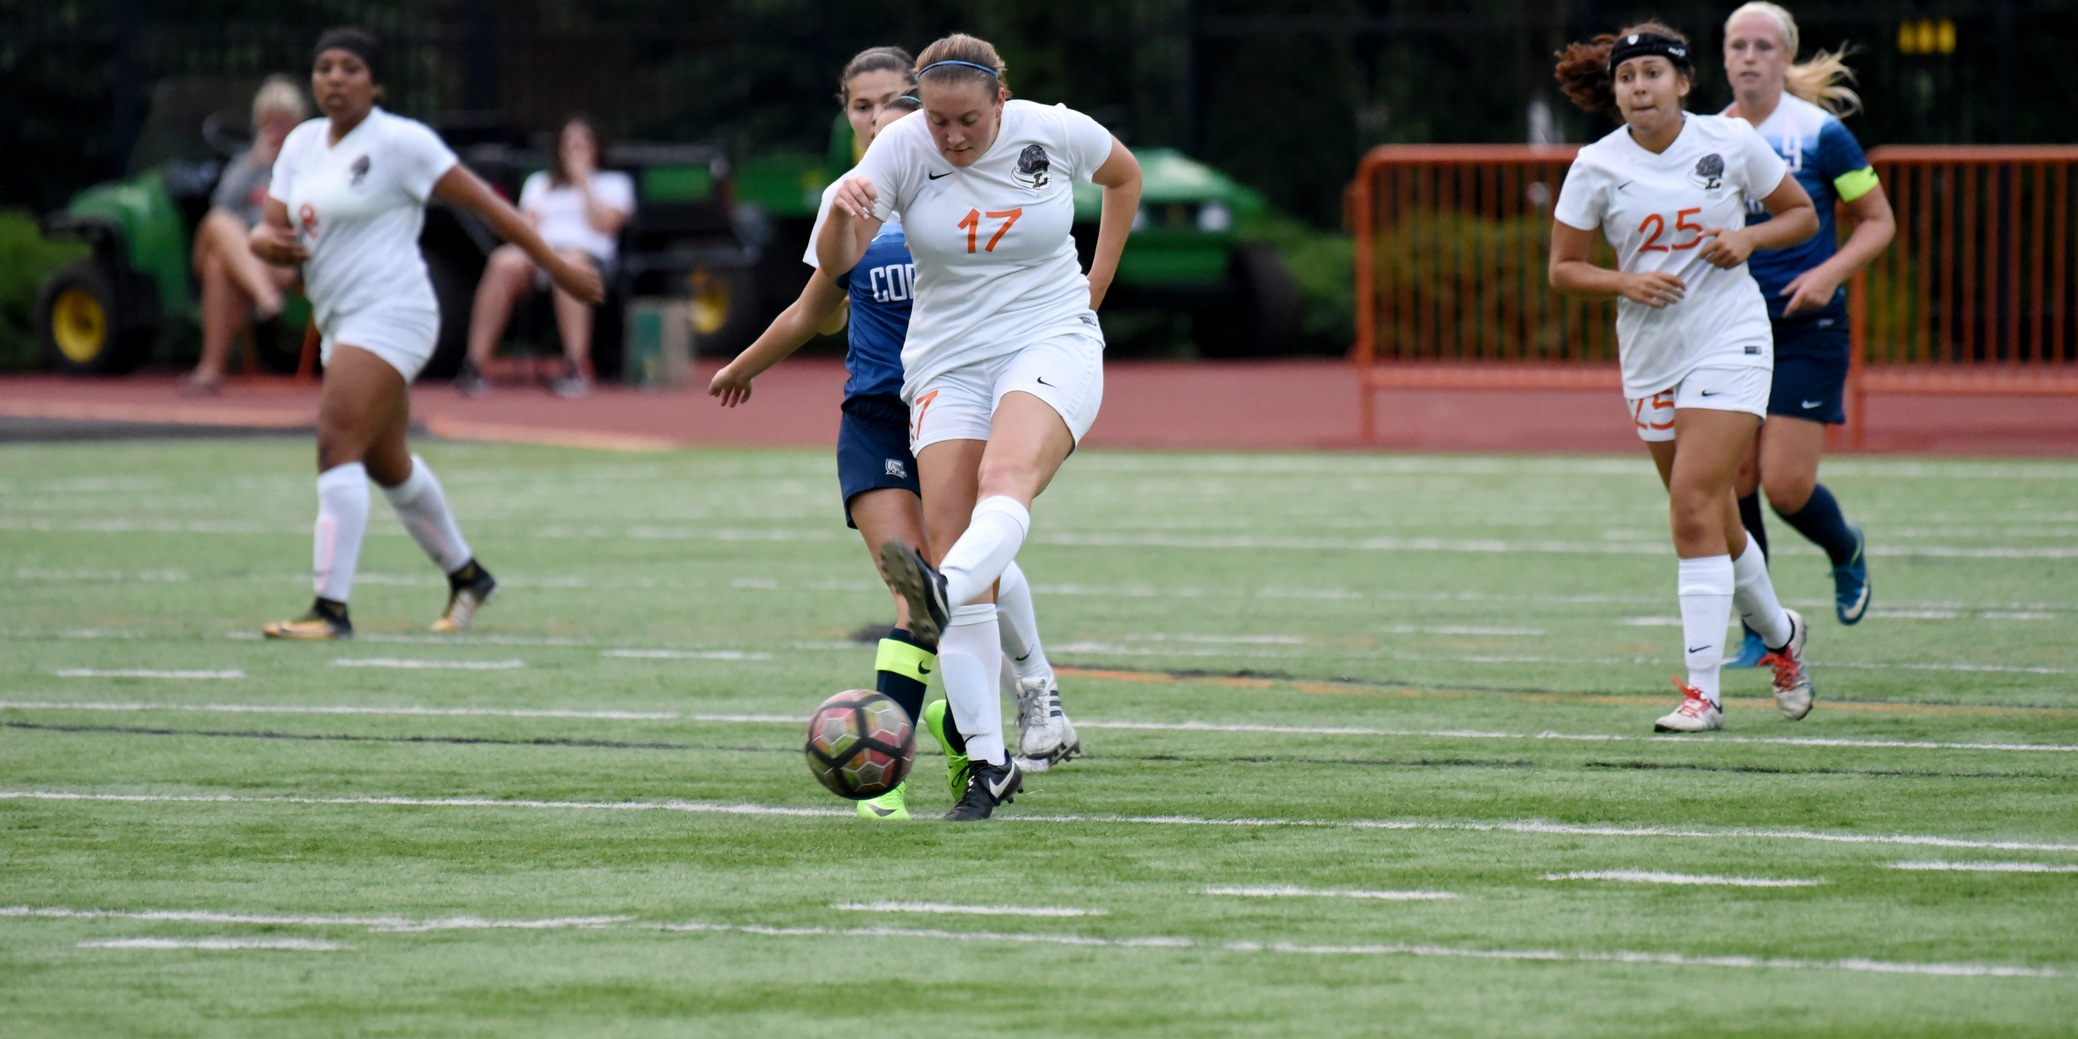 Hennes scores her first goal of the year in defeat